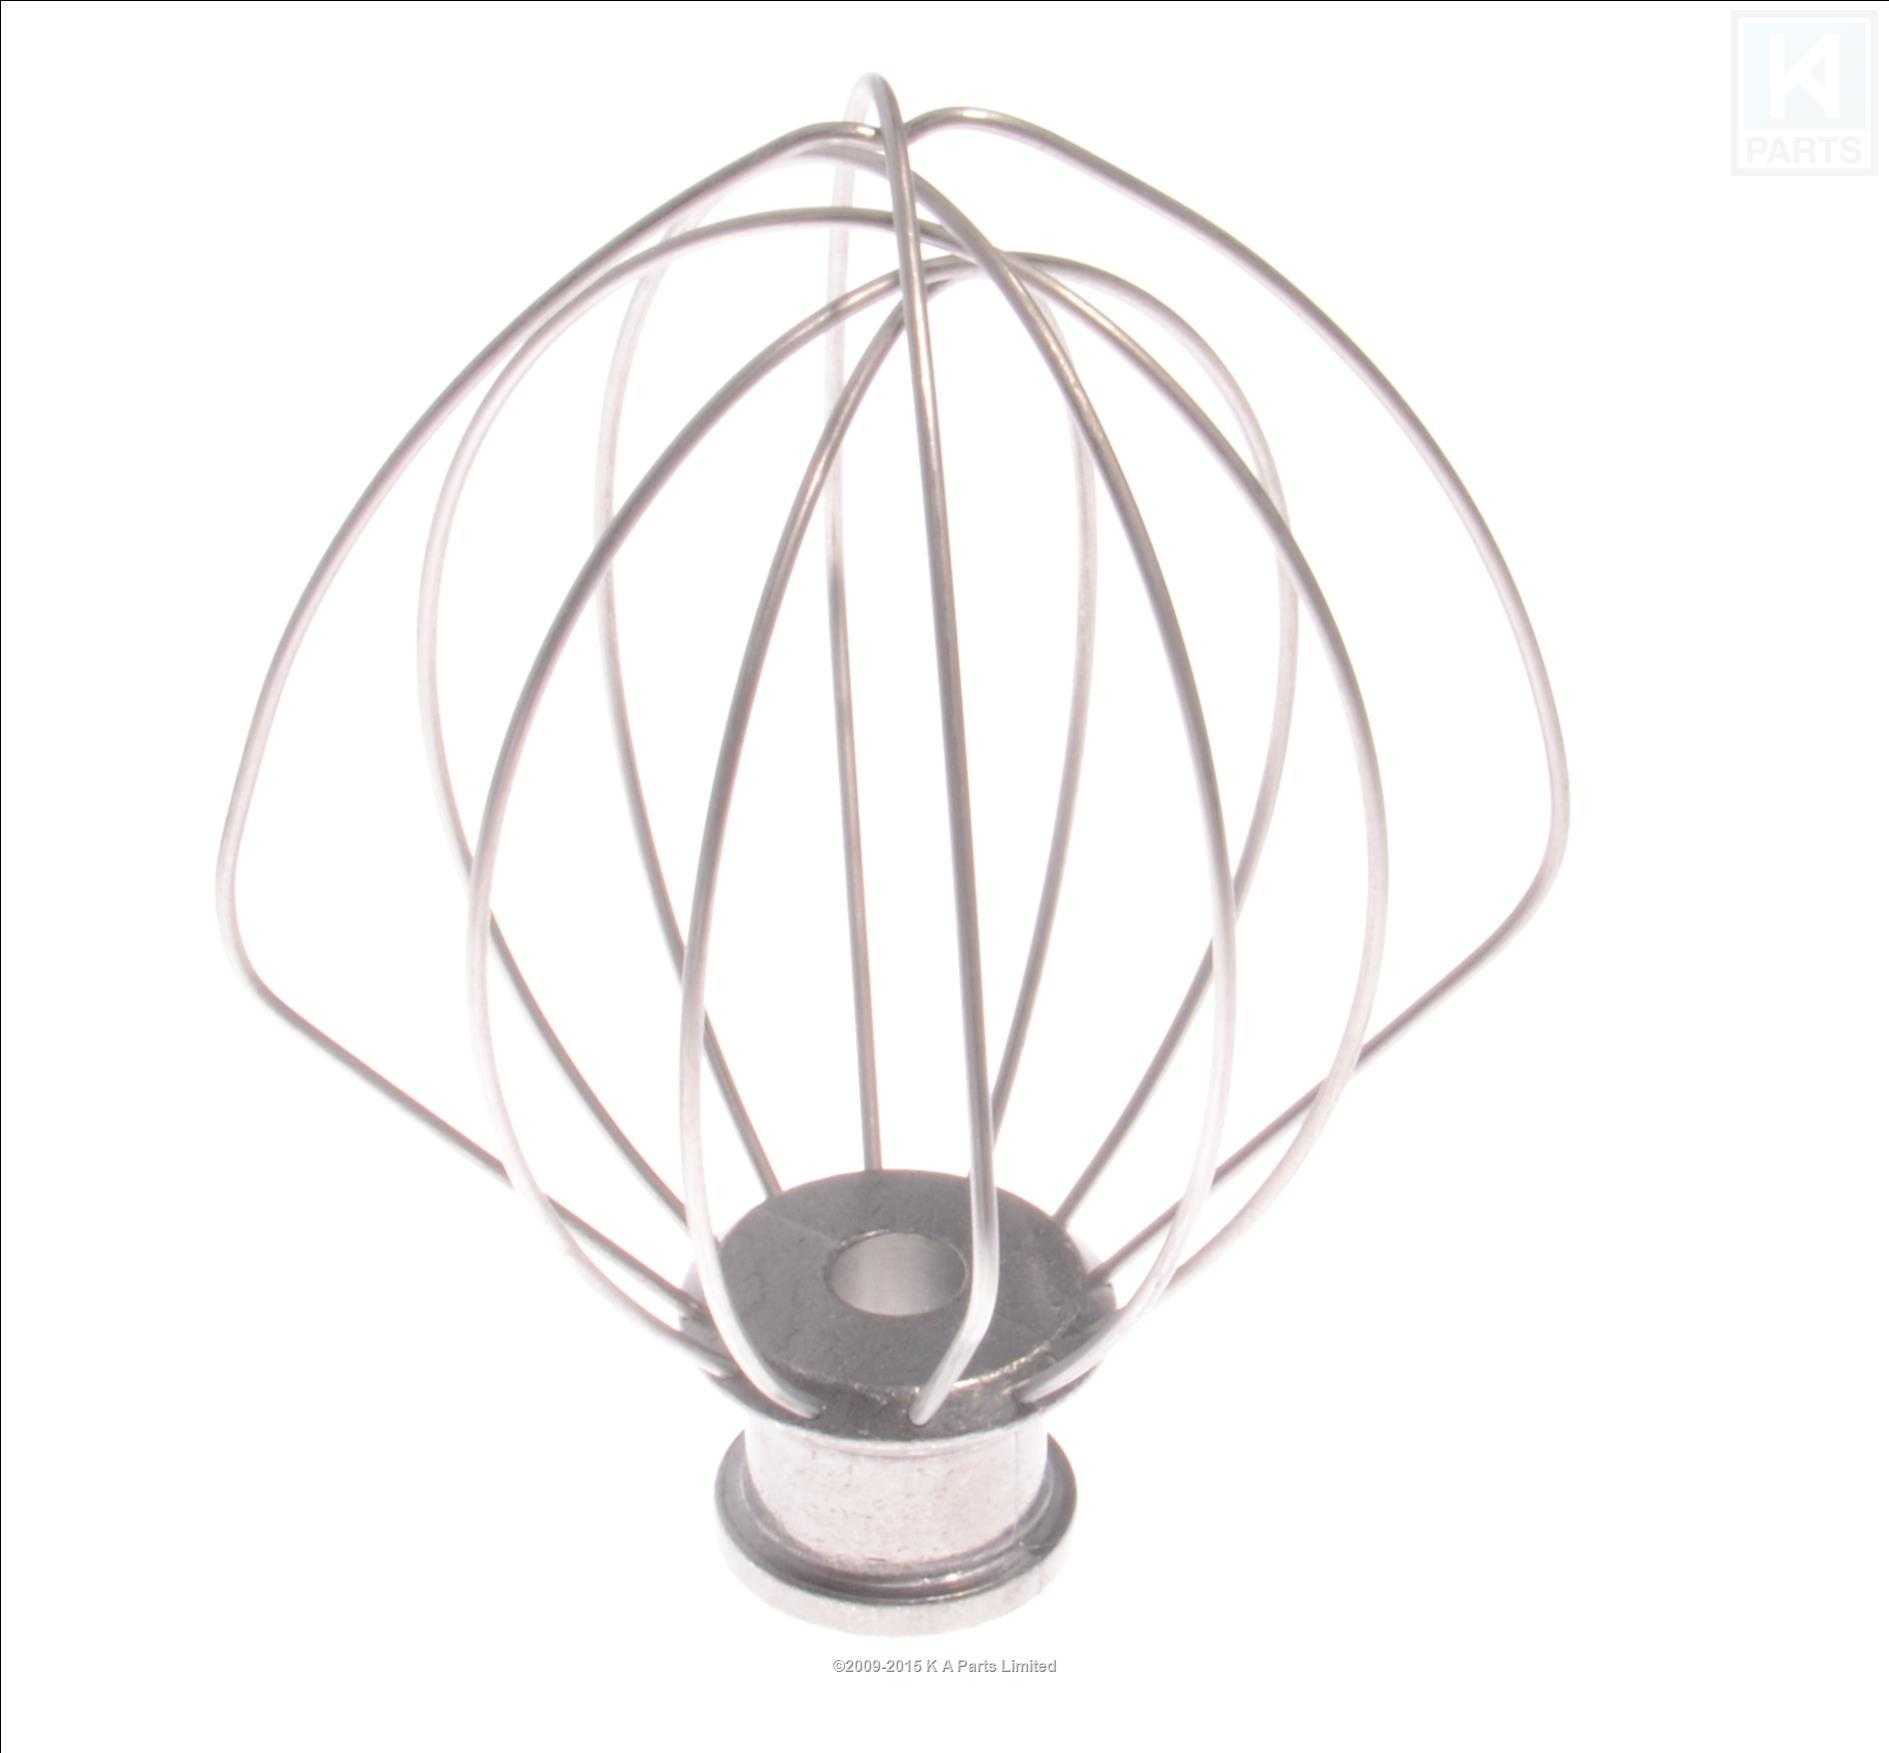 Mixer 4 5qt Tool Wire Whip Whisk 9706446